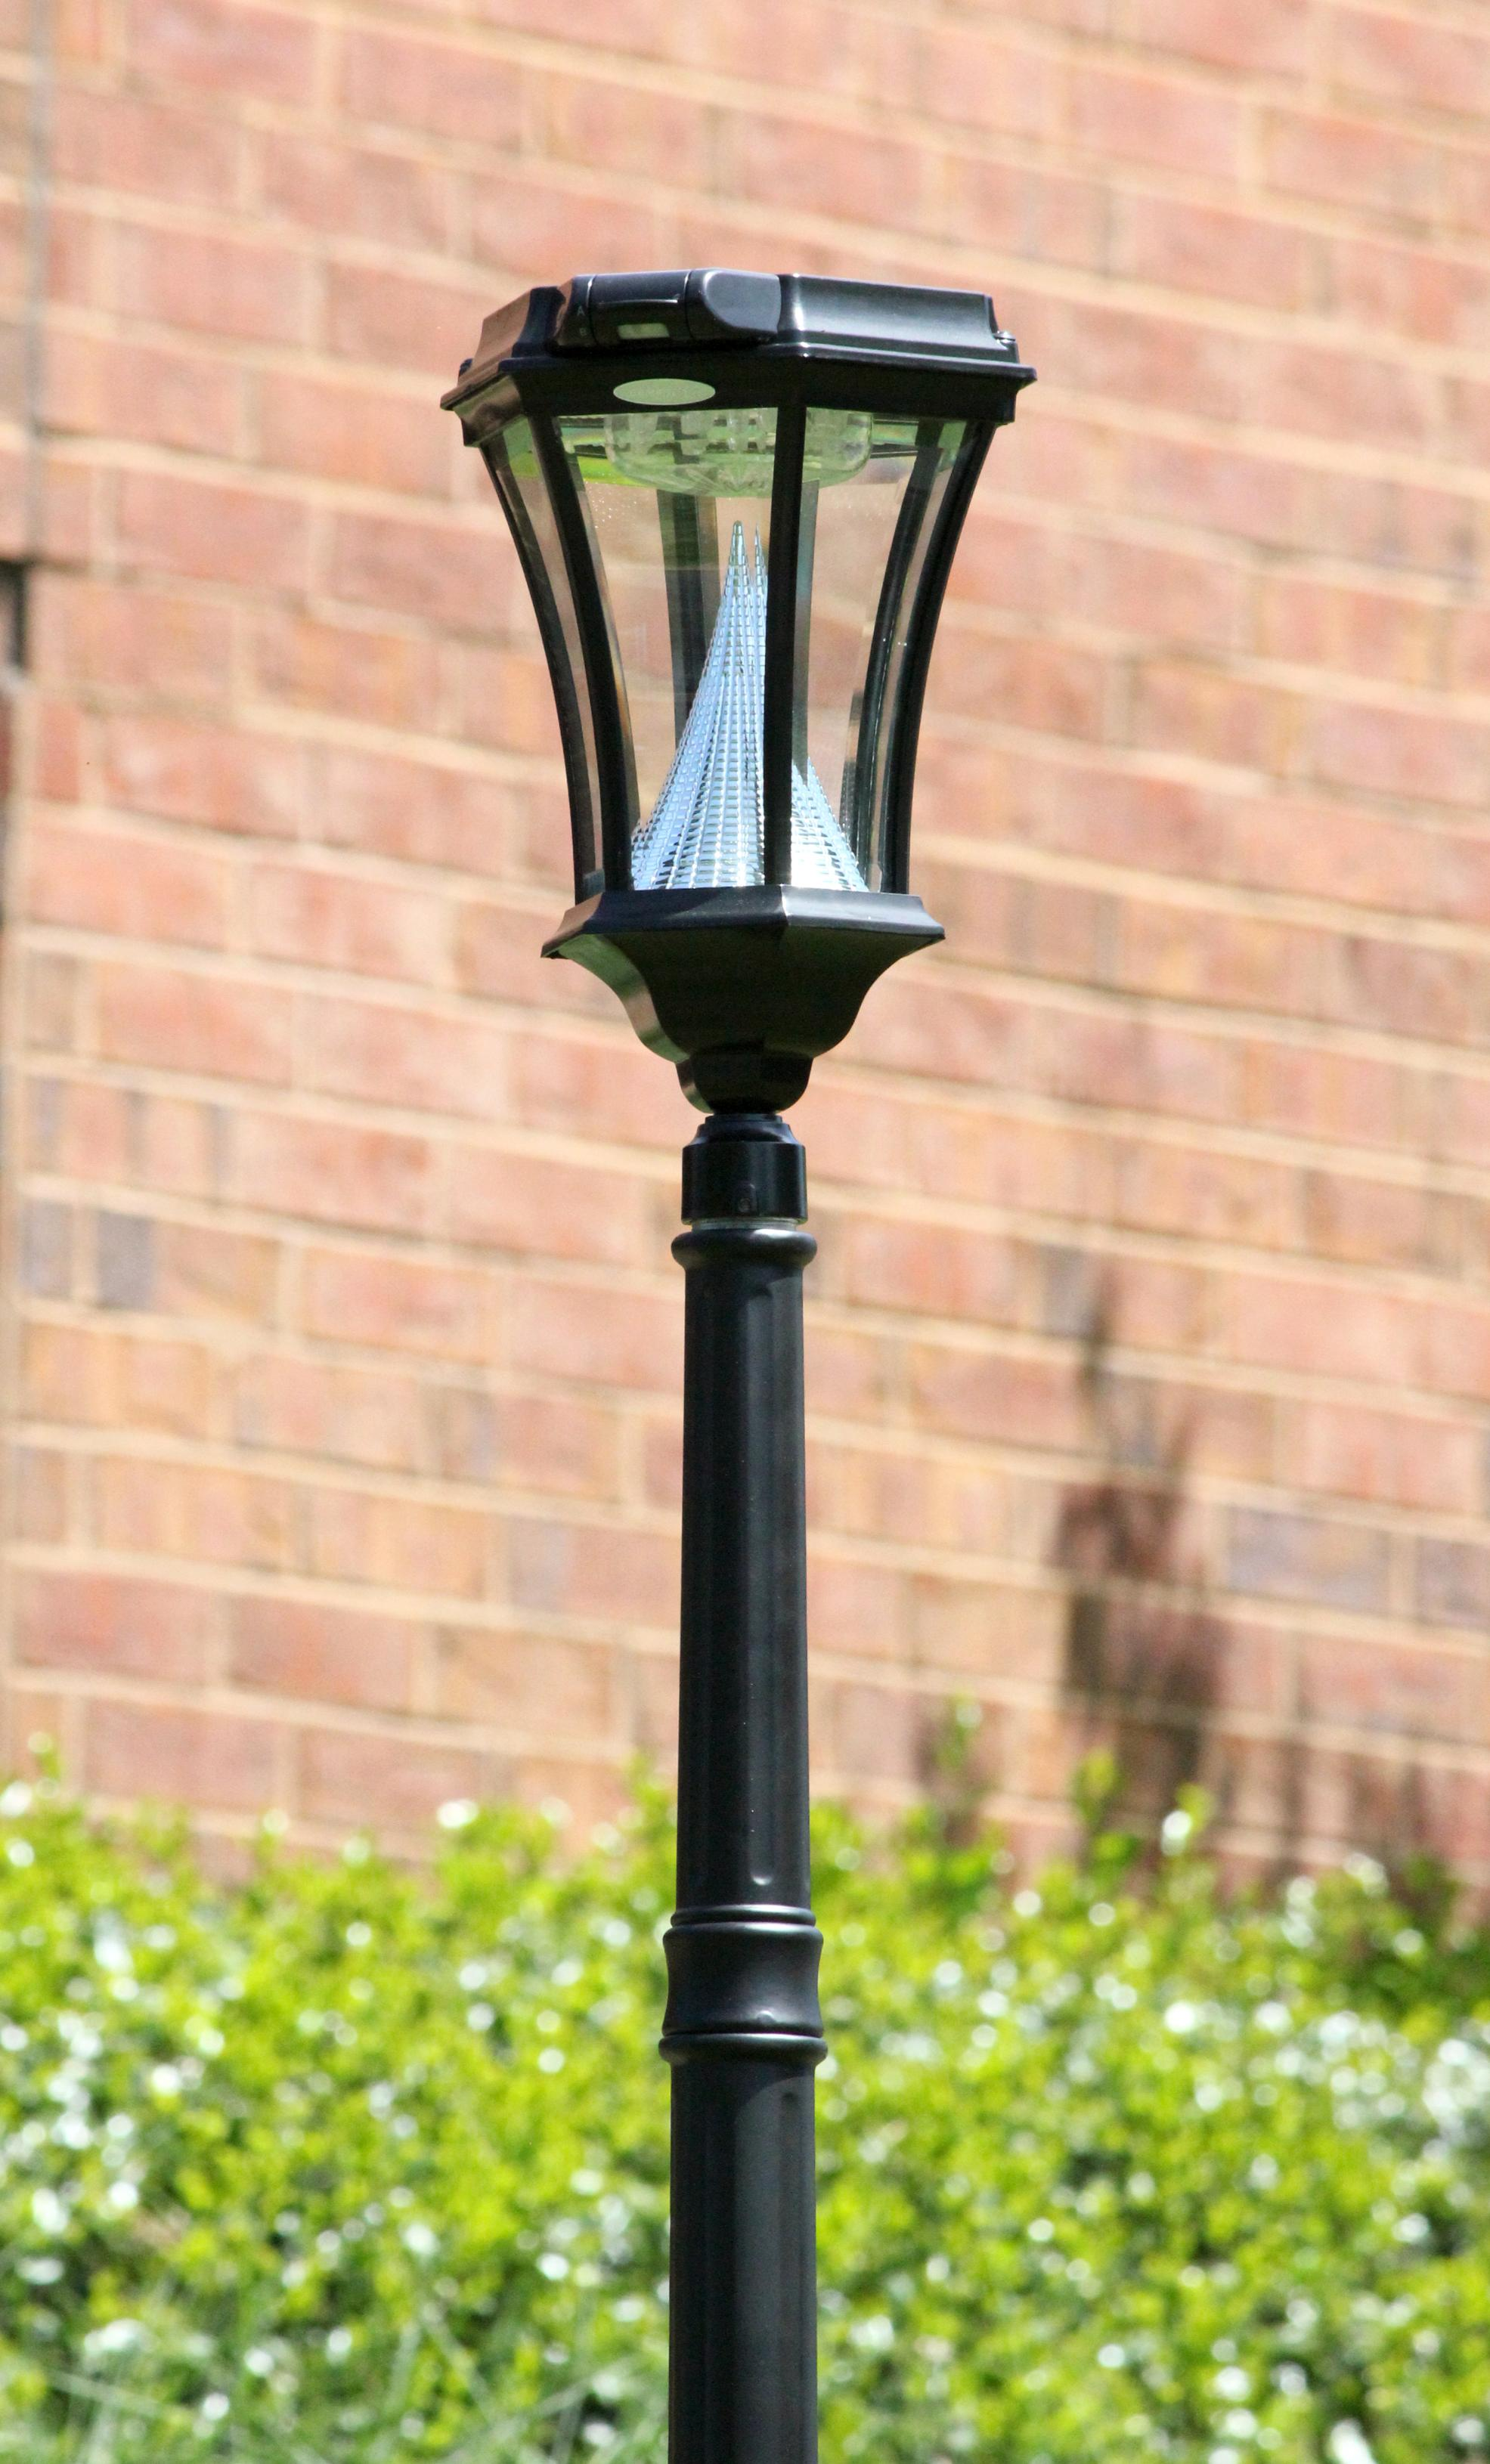 Amazon.com : Gama Sonic Victorian Solar Lamp Post and